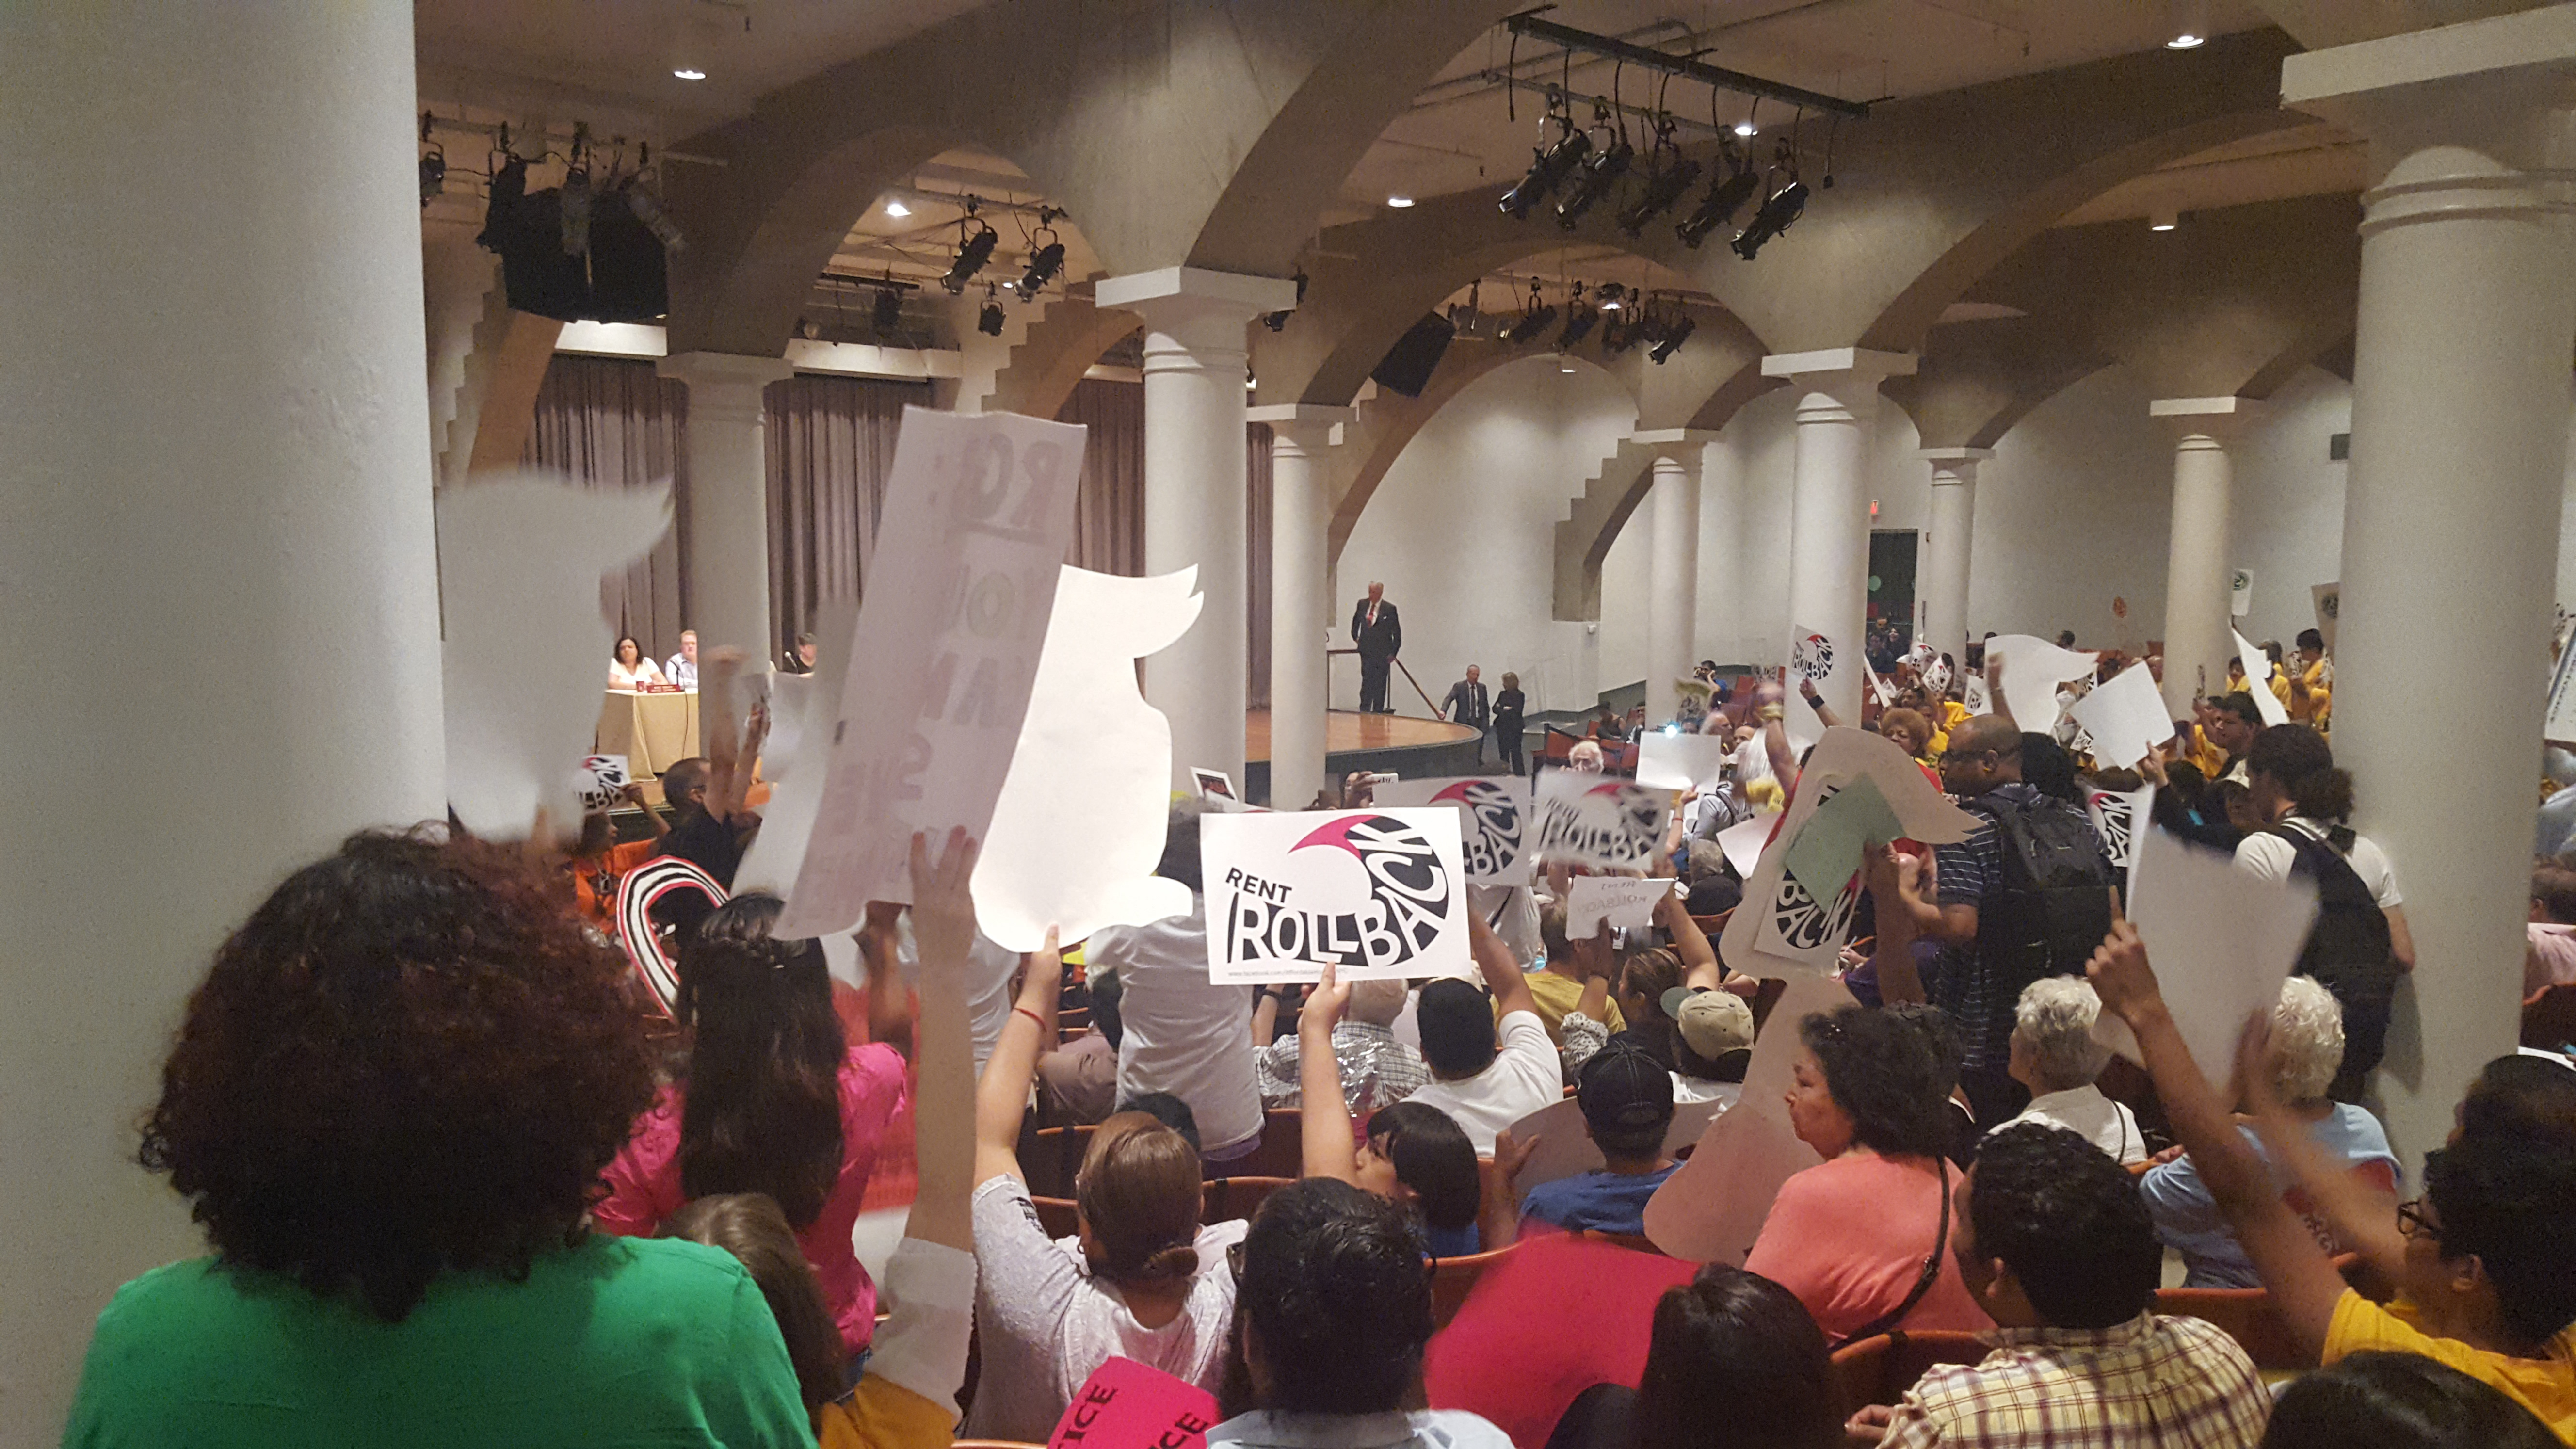 rent guidelines board votes to ze rent on 1 year leases raise the two landlord representatives on the rbg made the first proposal of the meeting the proposal called for a raise of 3 percent for one year leases and 5